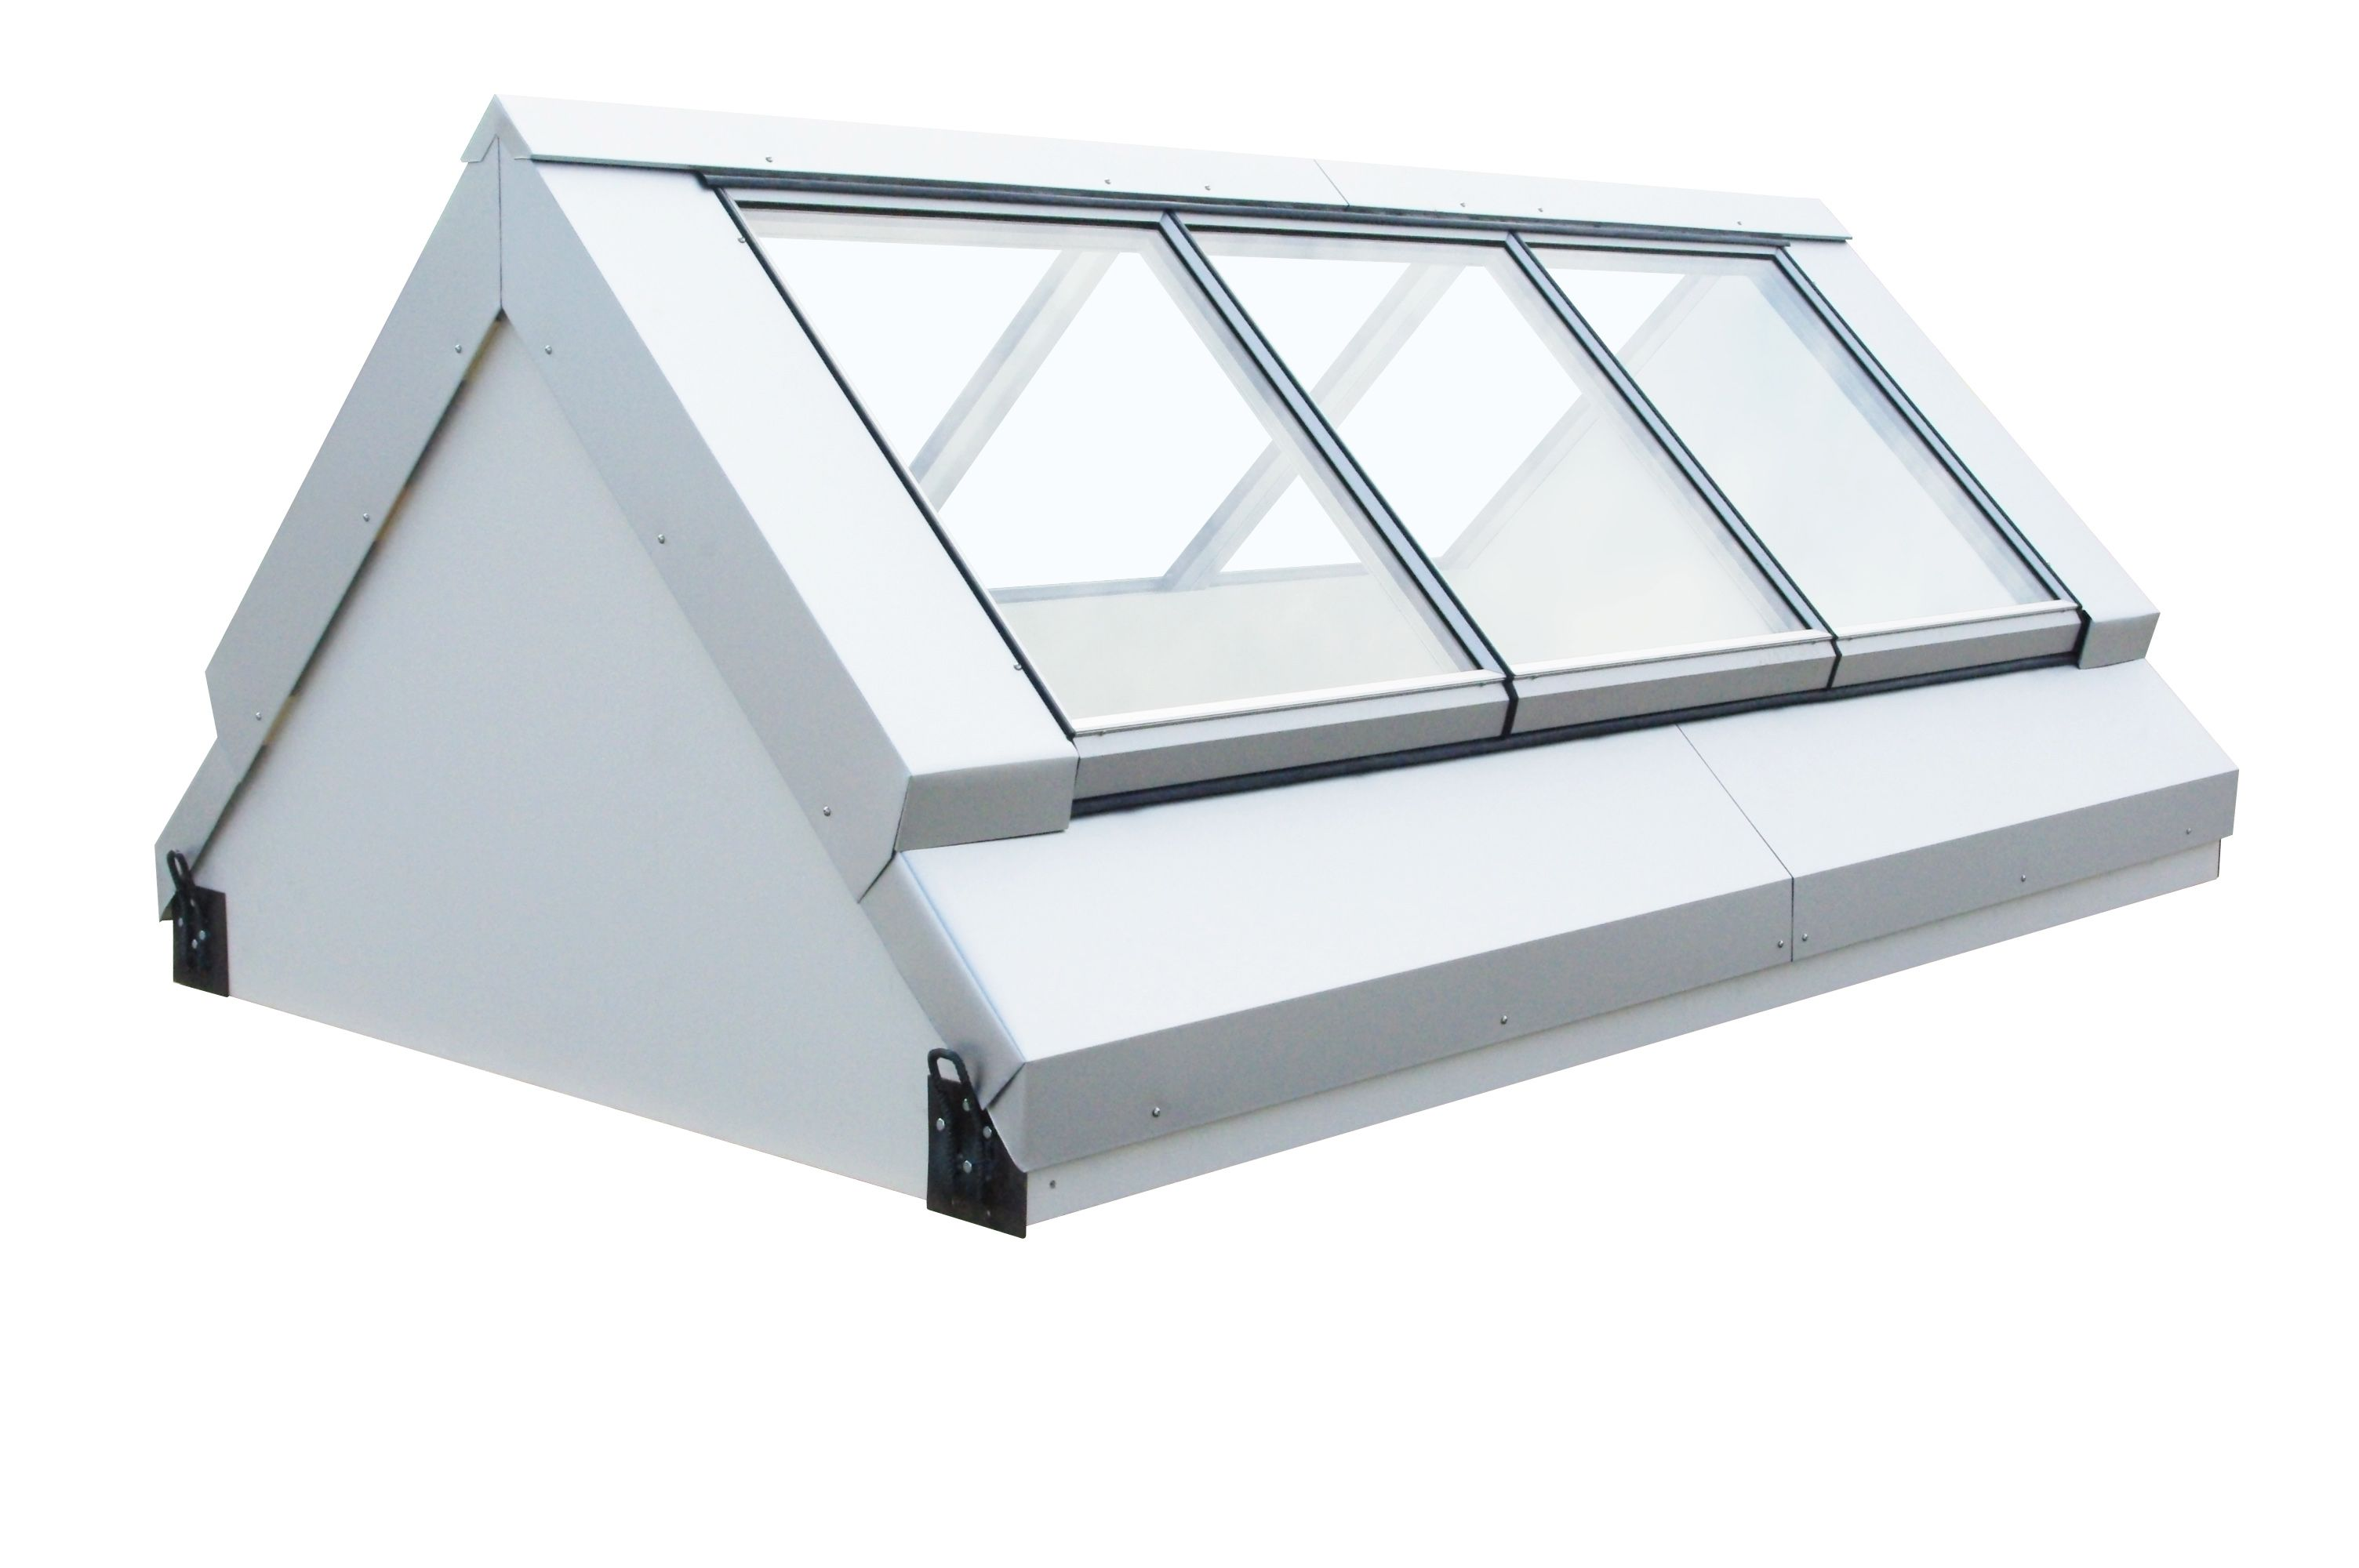 Vitralight Is The Cost Effective Easy To Install Very High Insulation Factory Sealed Thermally Broken A74 Aluminium Roof Light Solution For Flat Roofs Vi